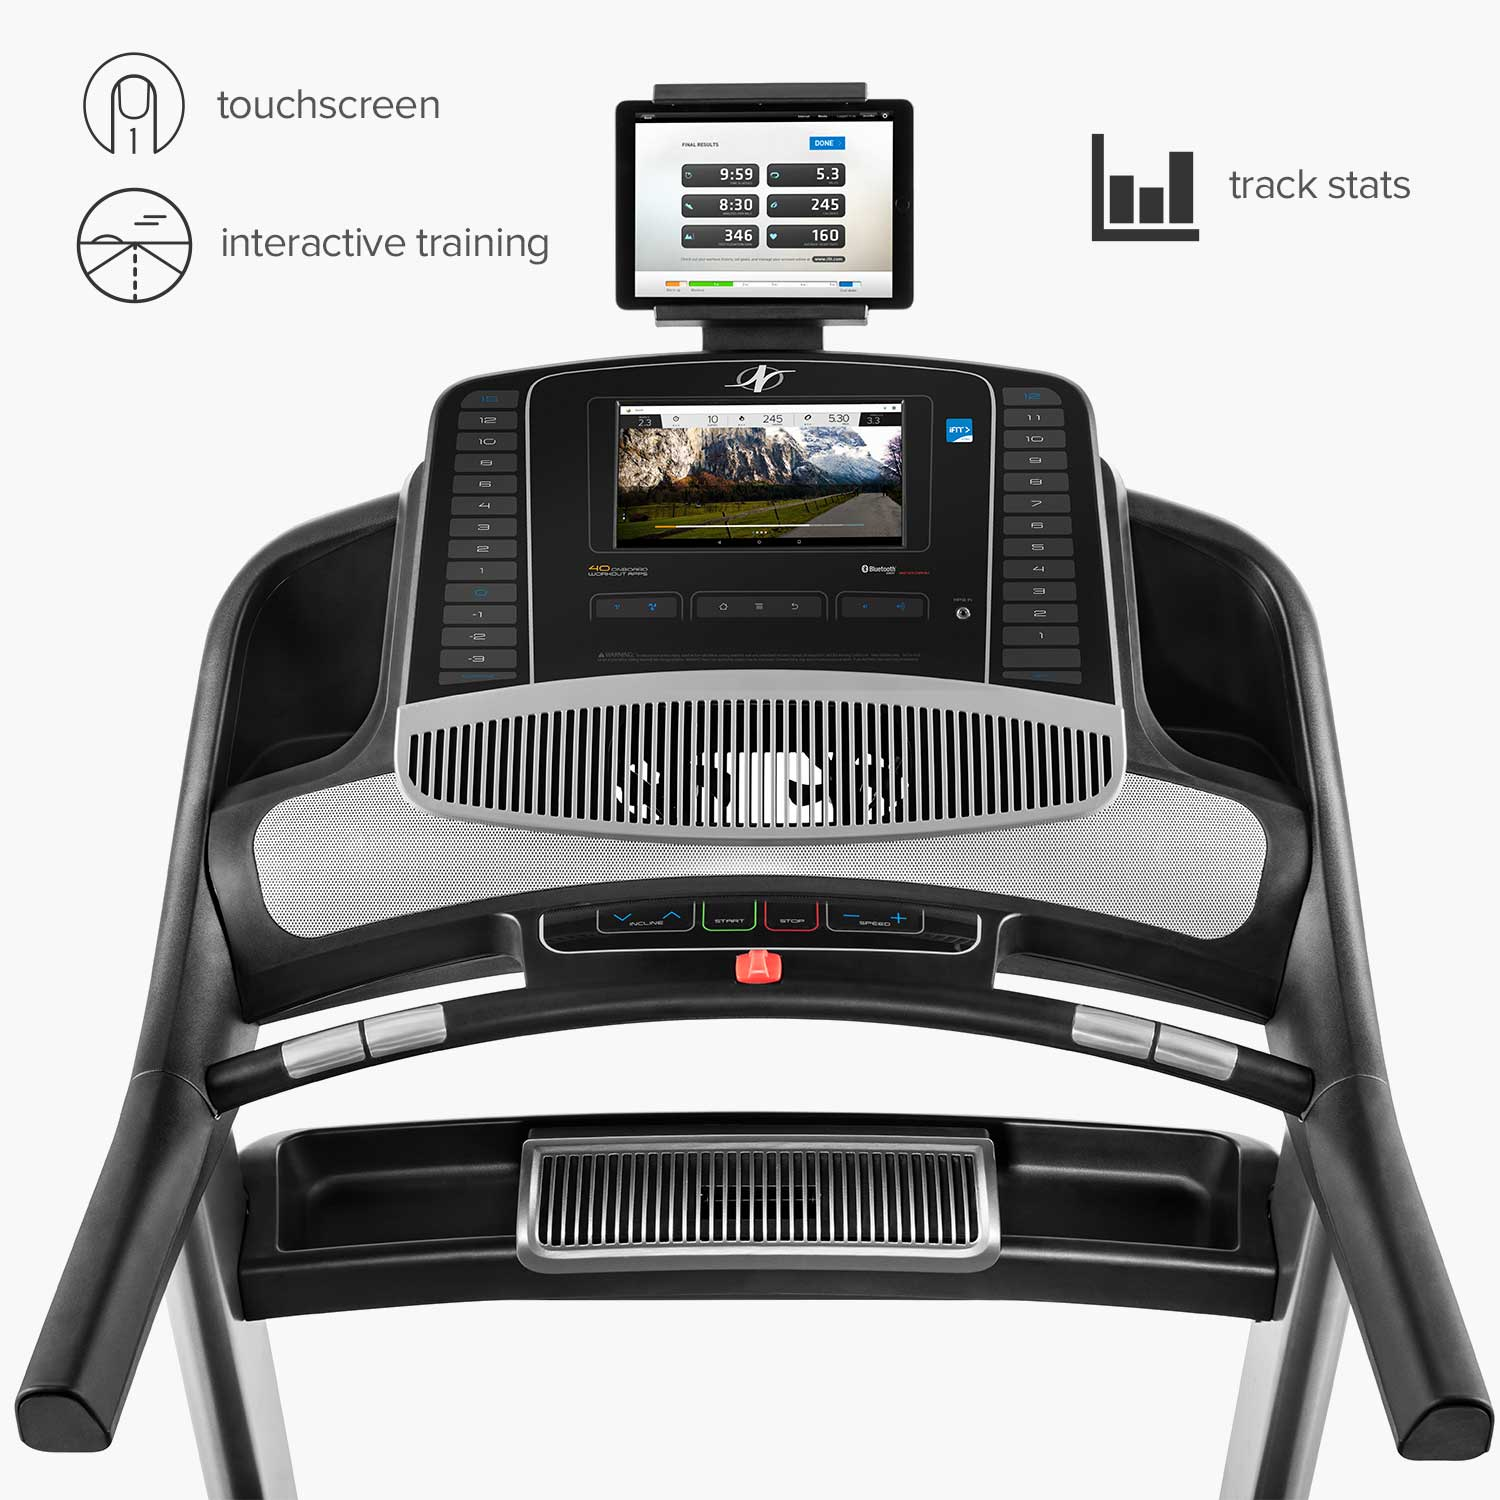 Nordictrack Commercial 2450 Treadmill Review — MAYBE YES NO